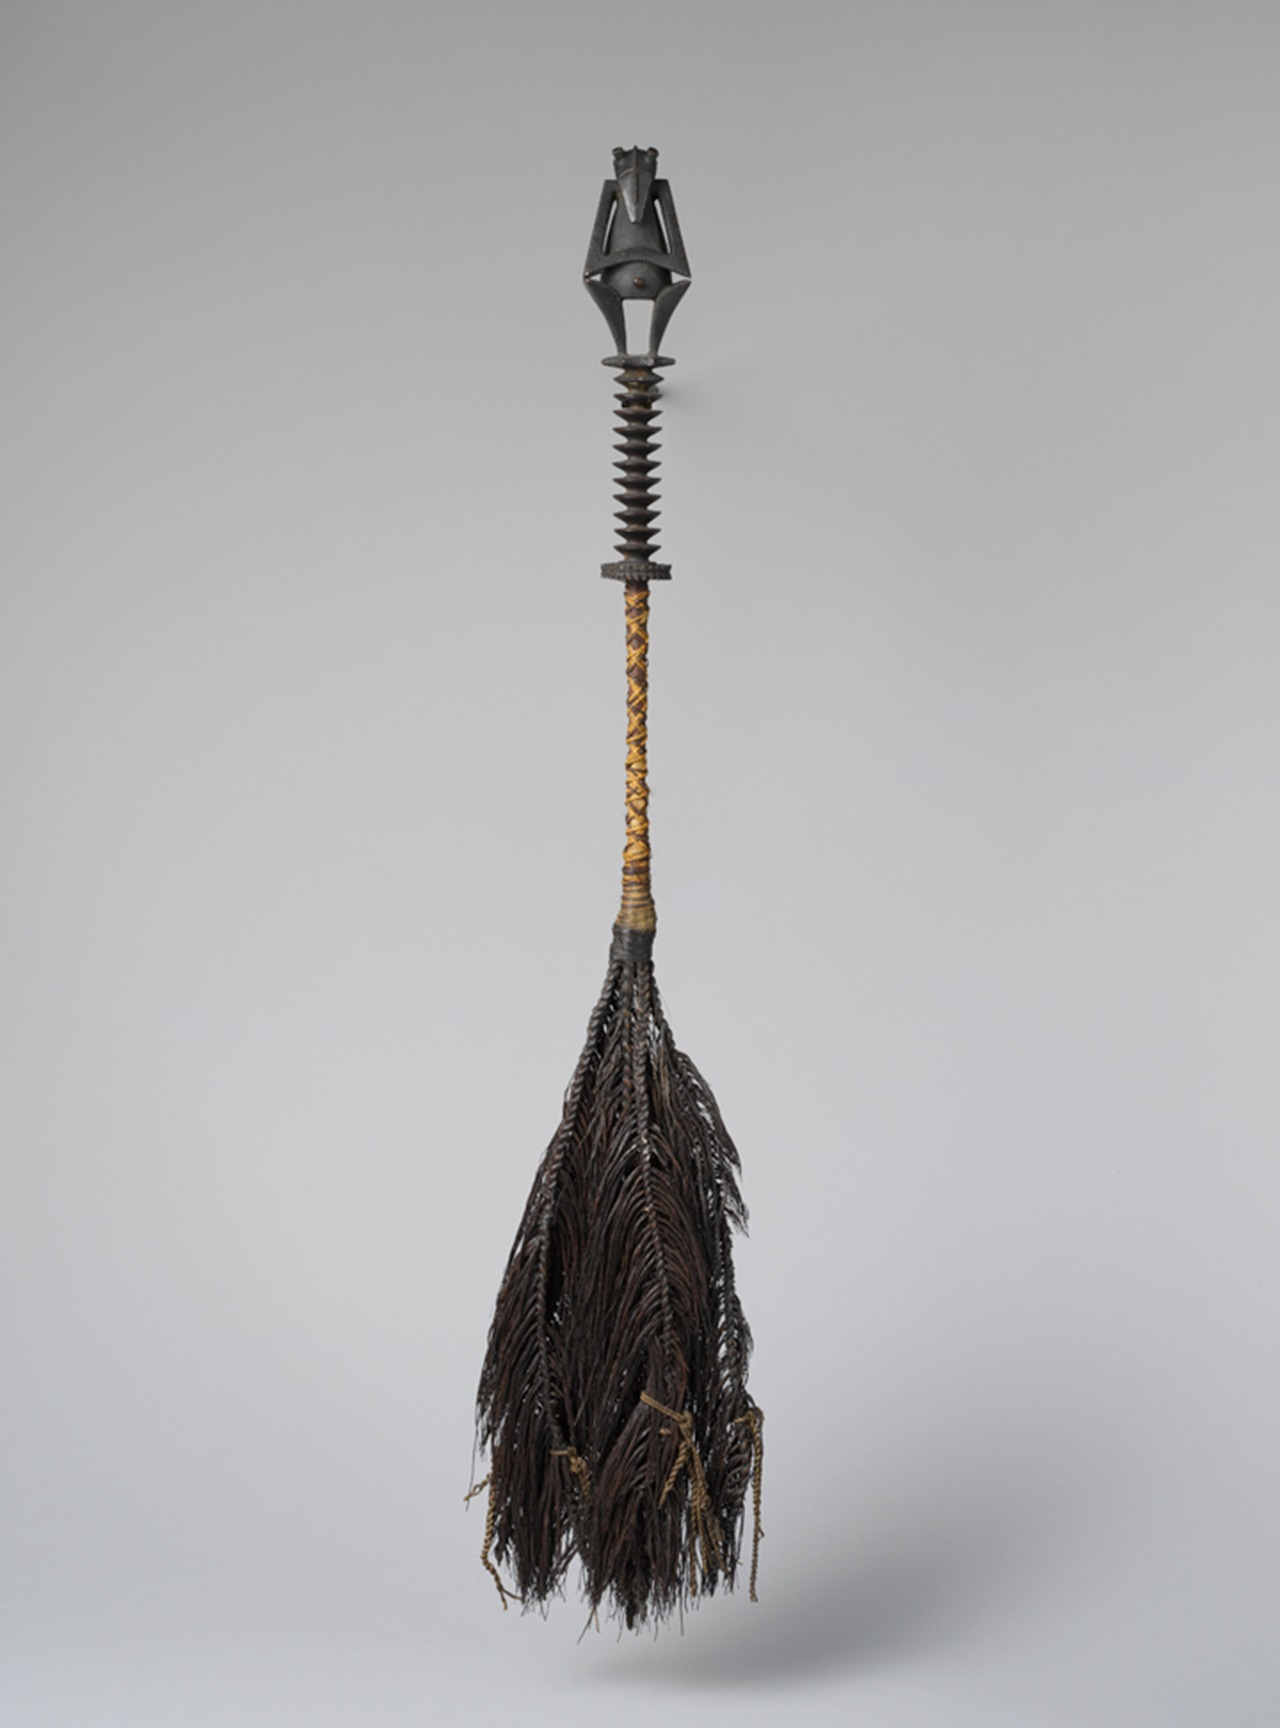 Fly whisk (tahiri) , early to mid-19th century. French Polynesia, Austral Islands. Wood, fiber, human hair, W. 5 1/8 x L. 32 in. (13 x 81.3 cm). The Metropolitan Museum of Art, New York, The Michael C. Rockefeller Memorial Collection, Bequest of Nelson A. Rockefeller, 1979 (1979.206.1487)